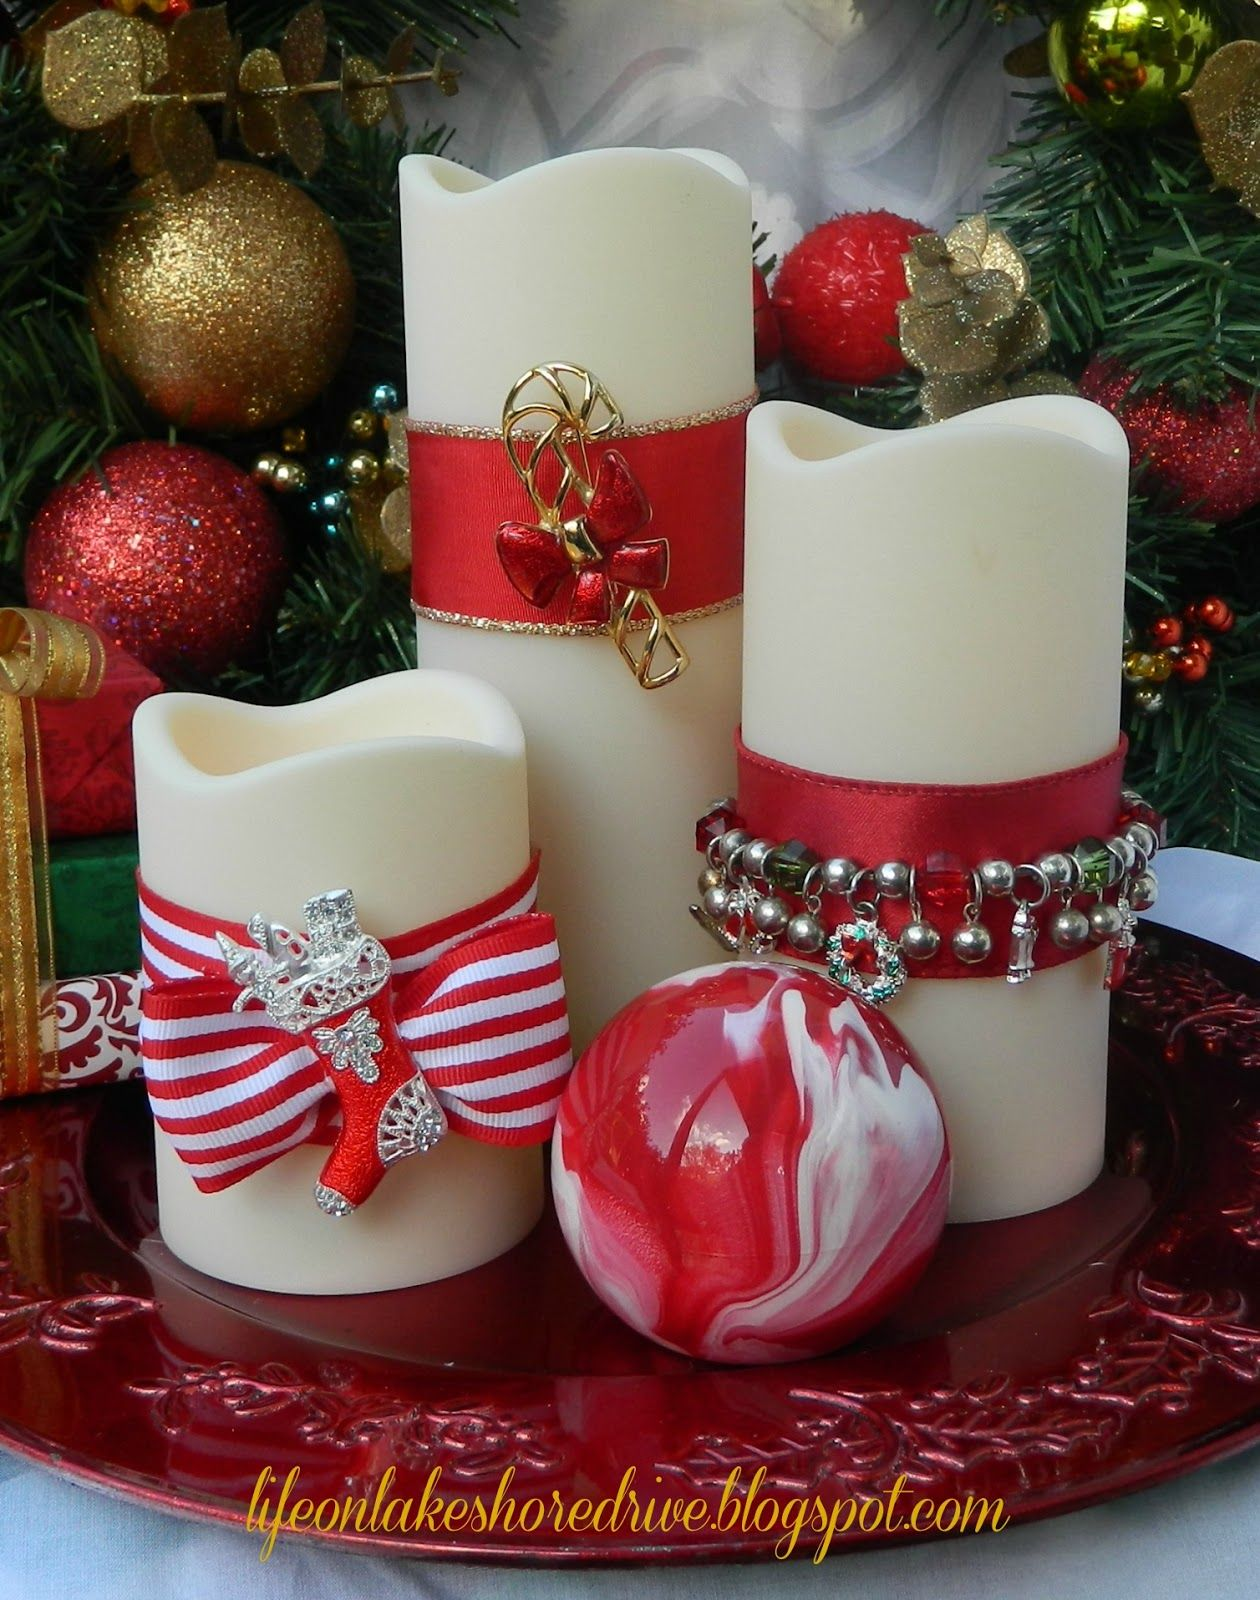 Life on Lakeshore Drive: DIY Christmas Jewelry for Candles